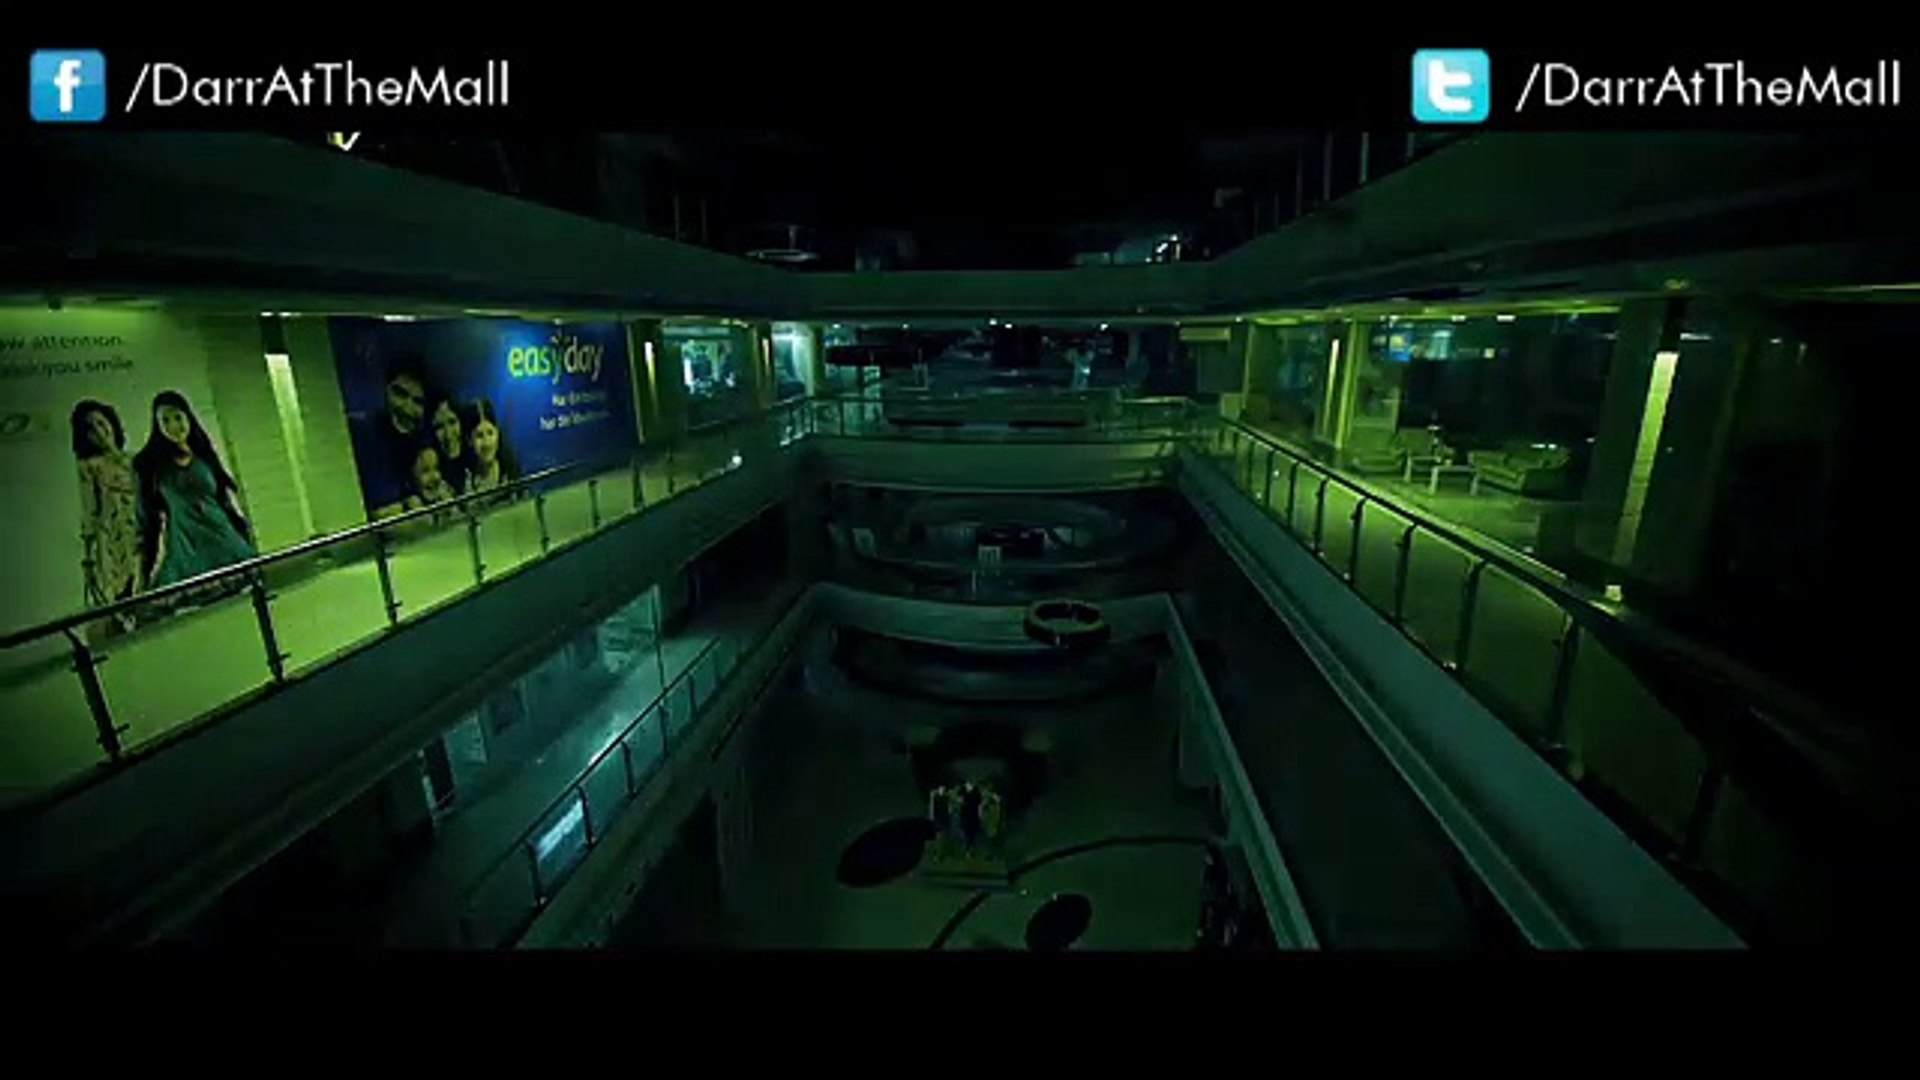 Darr the Mall full movie